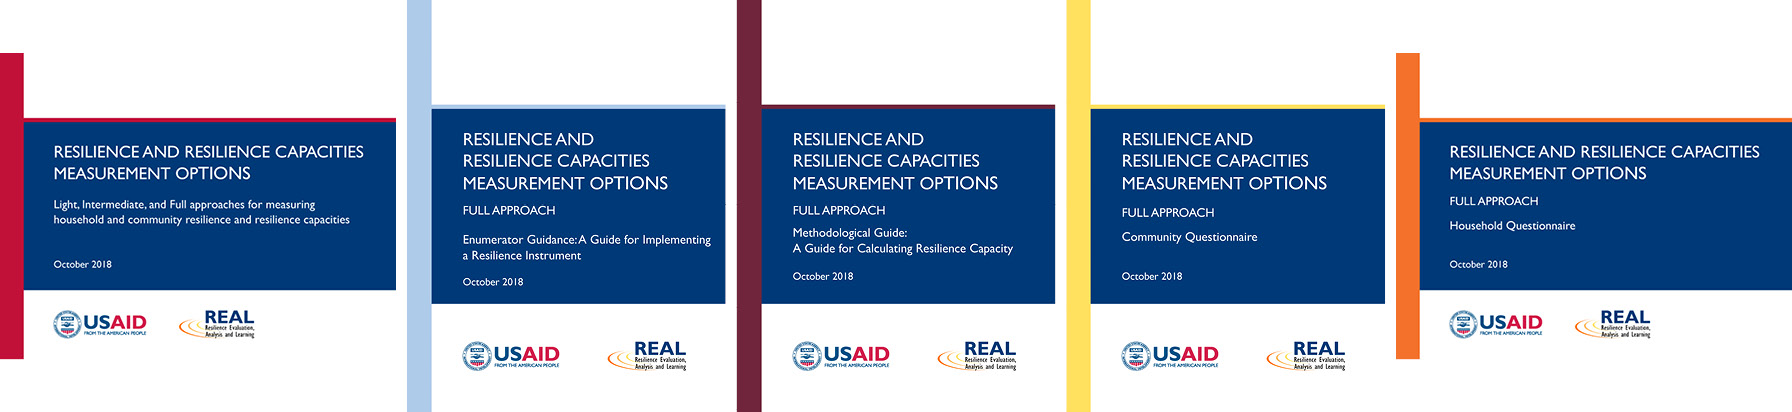 image of front covers of guidance documents